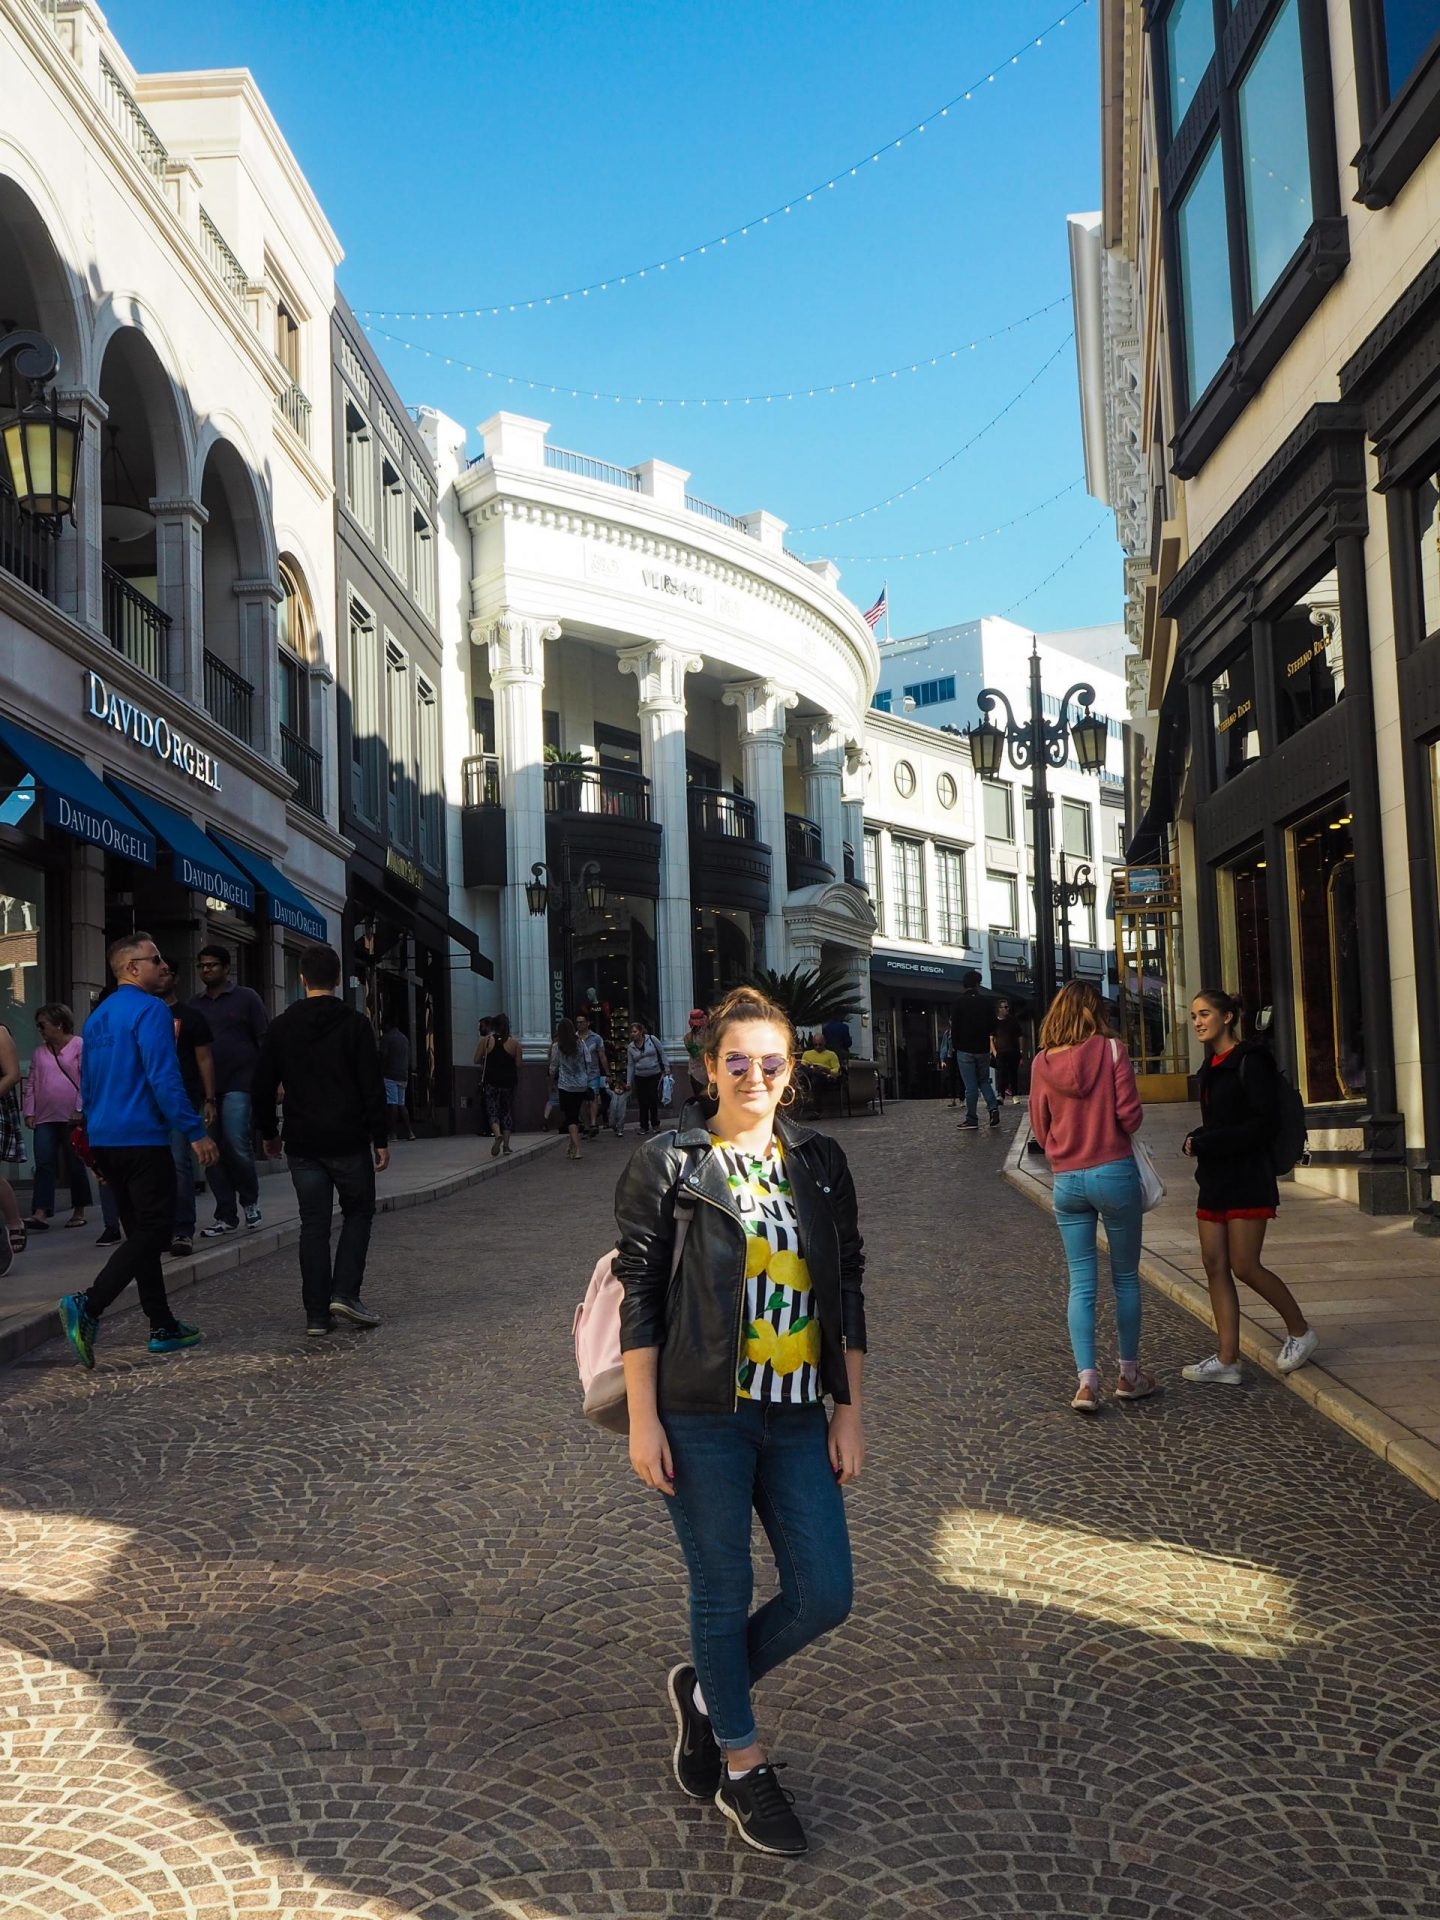 Rodeo Drive - Beverly Hills - Los Angeles Travel Diary - Rachel Nicole UK Travel Blogger